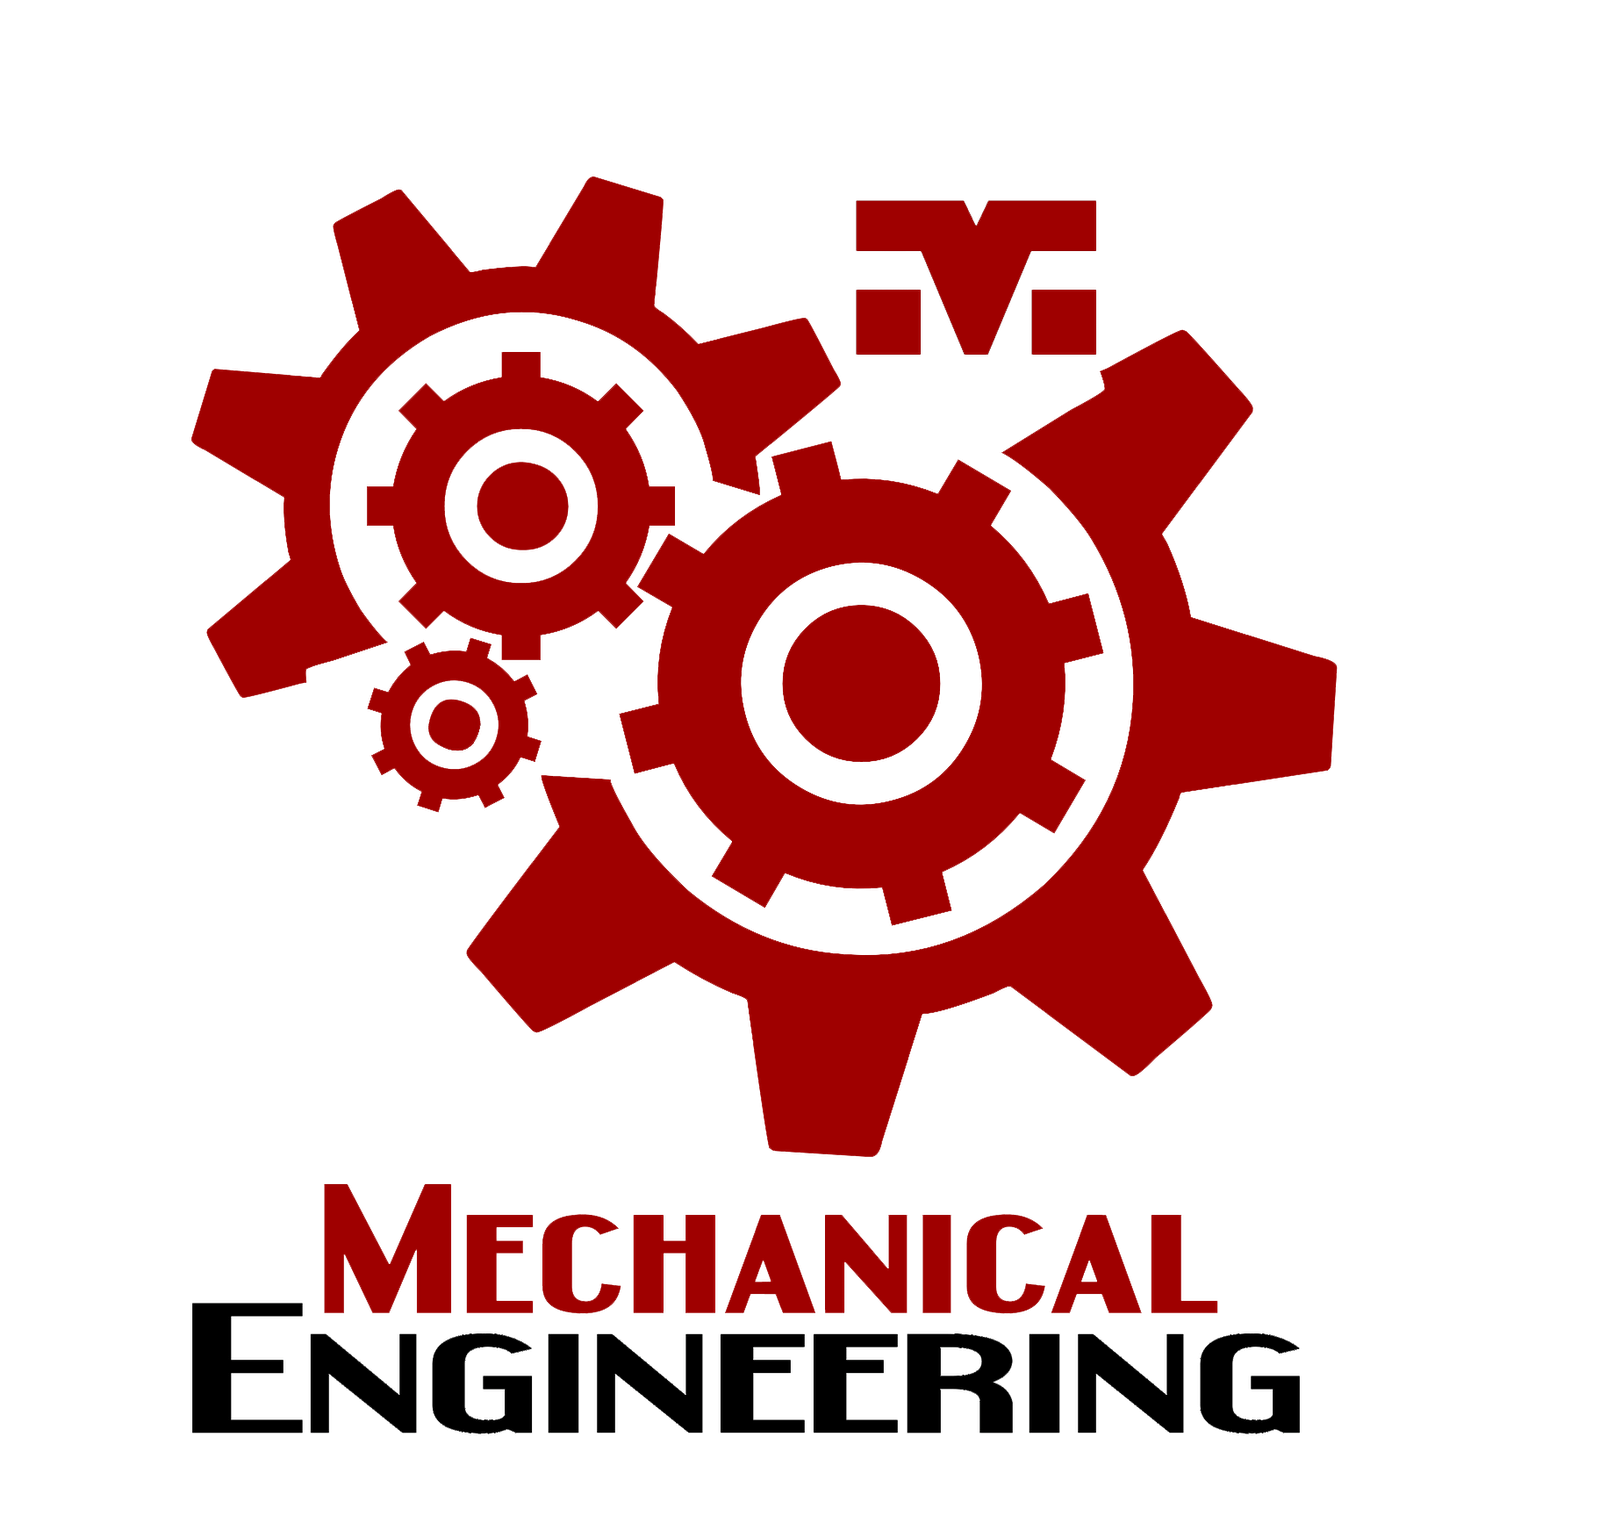 industry clipart mechanical engineering